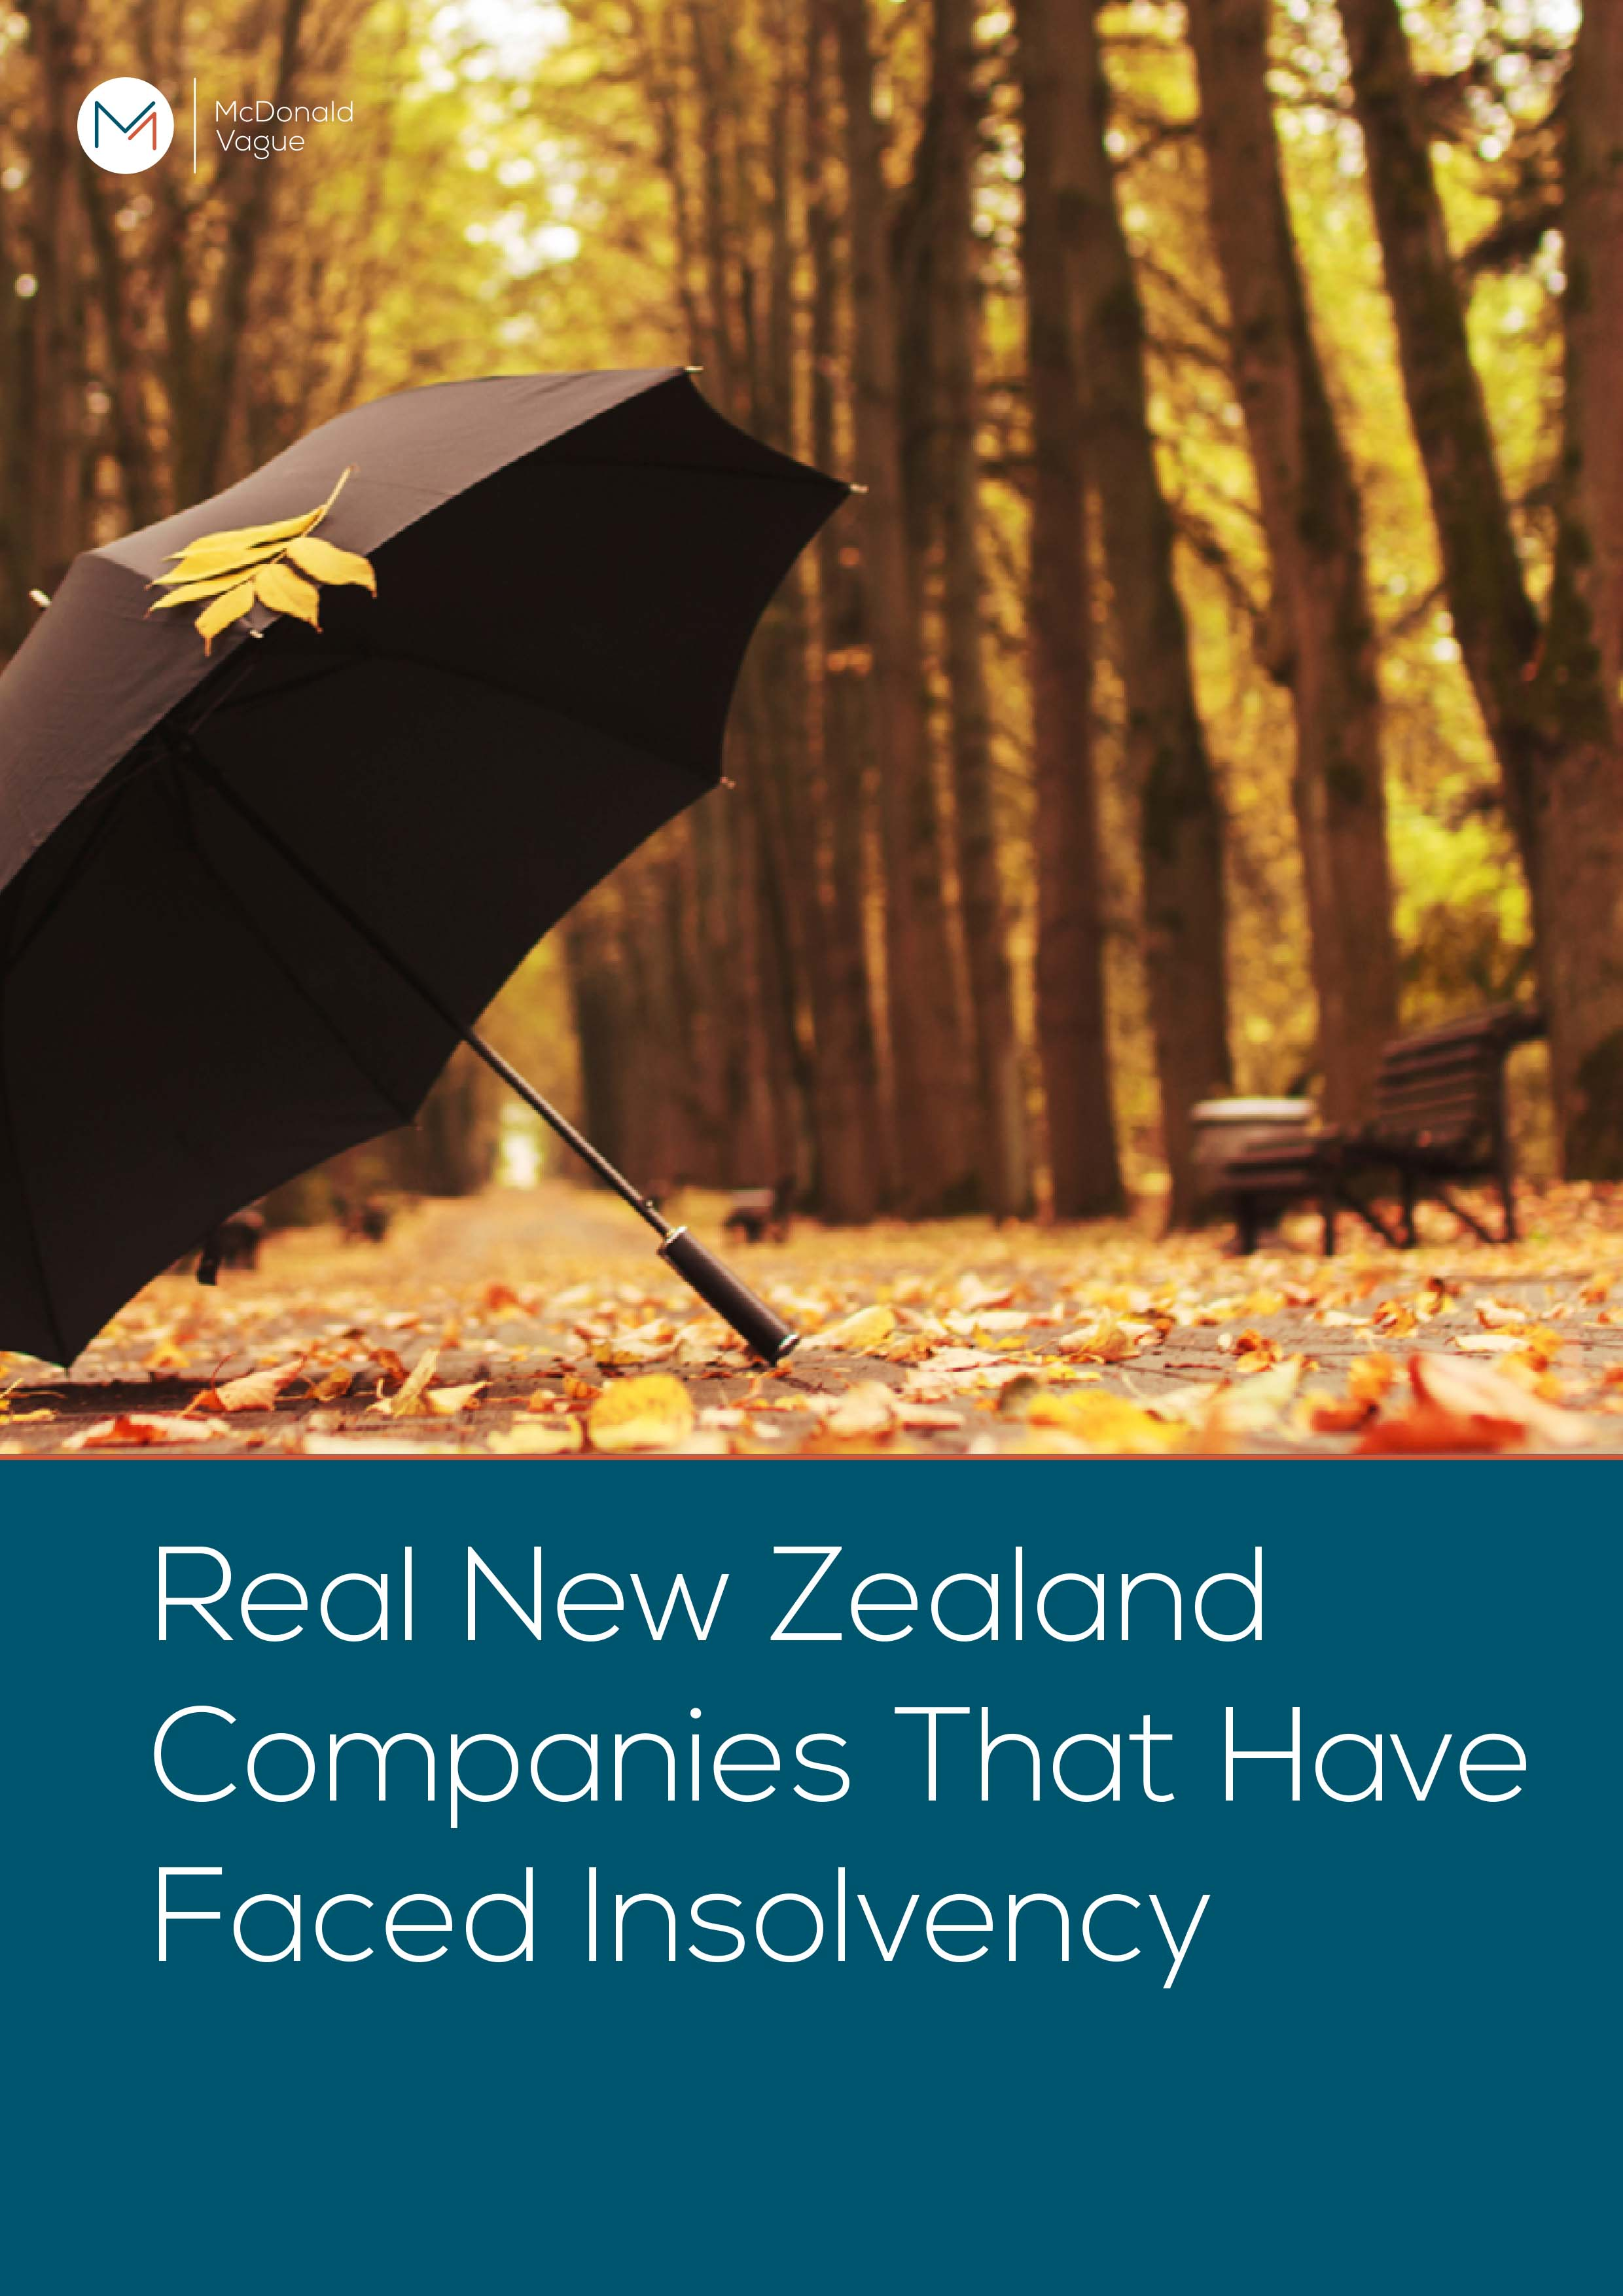 Real New Zealand Companies That Have Faced Insolvency